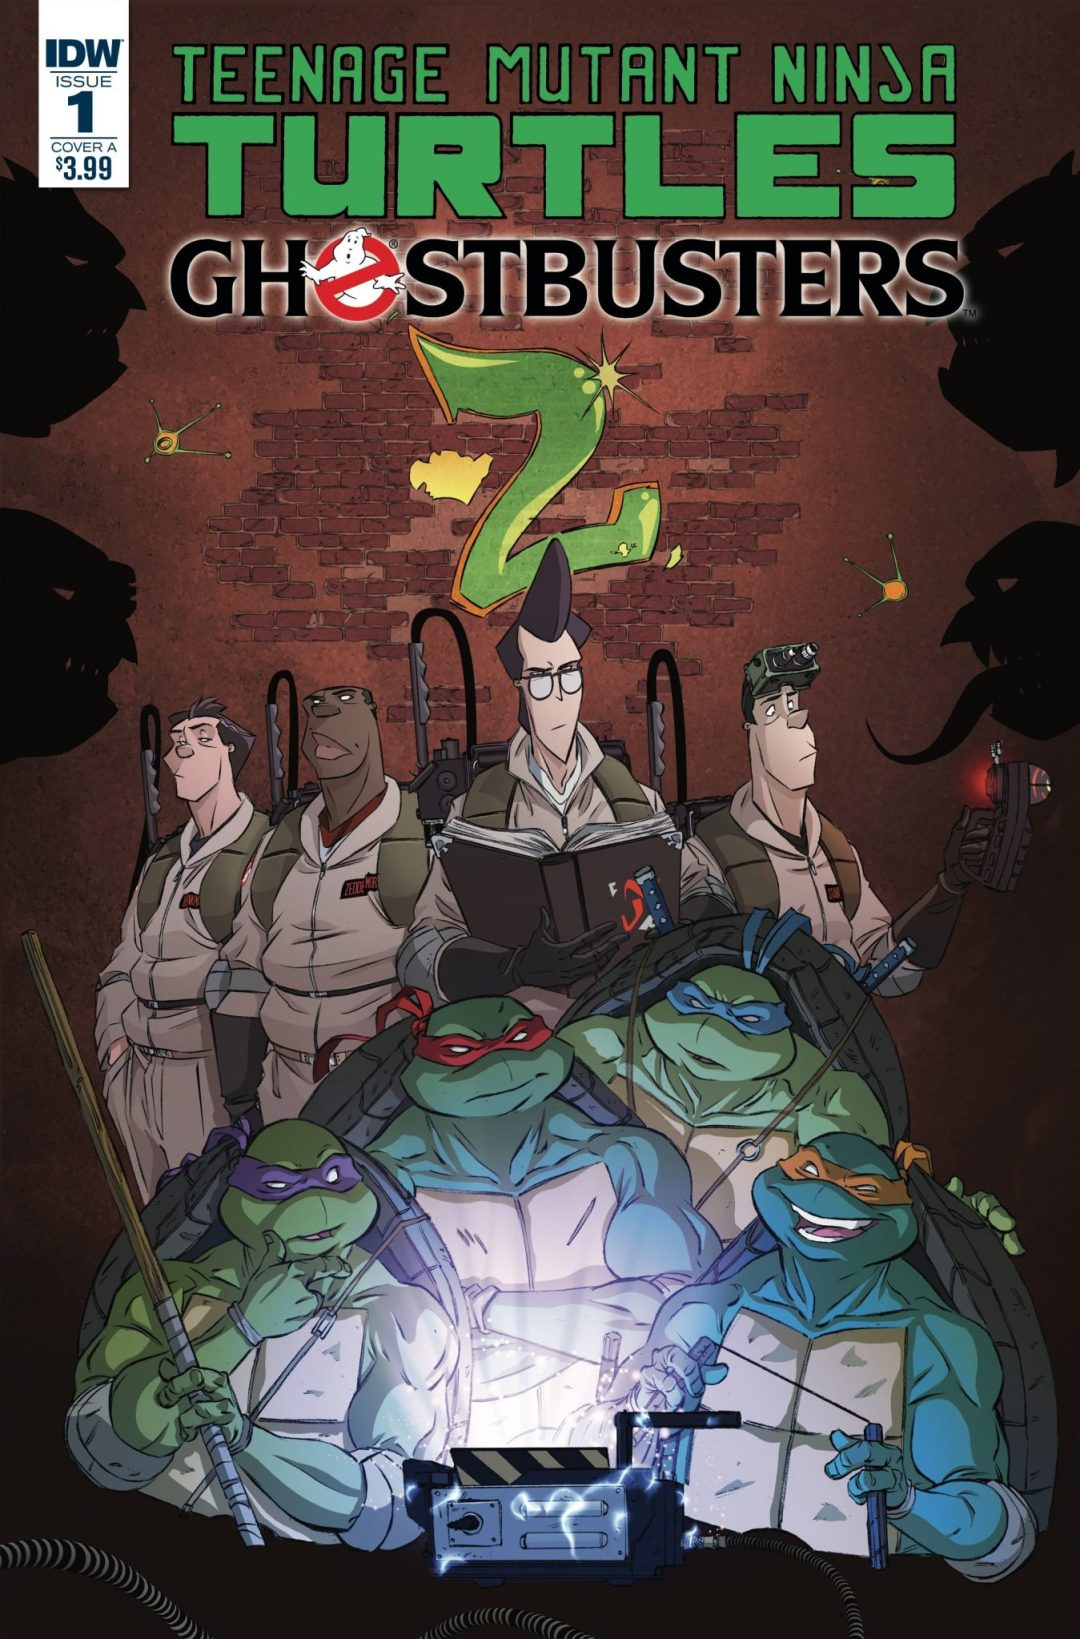 'Teenage Mutant Ninja Turtles/Ghostbusters' Comic Book Crossover Sequel Coming